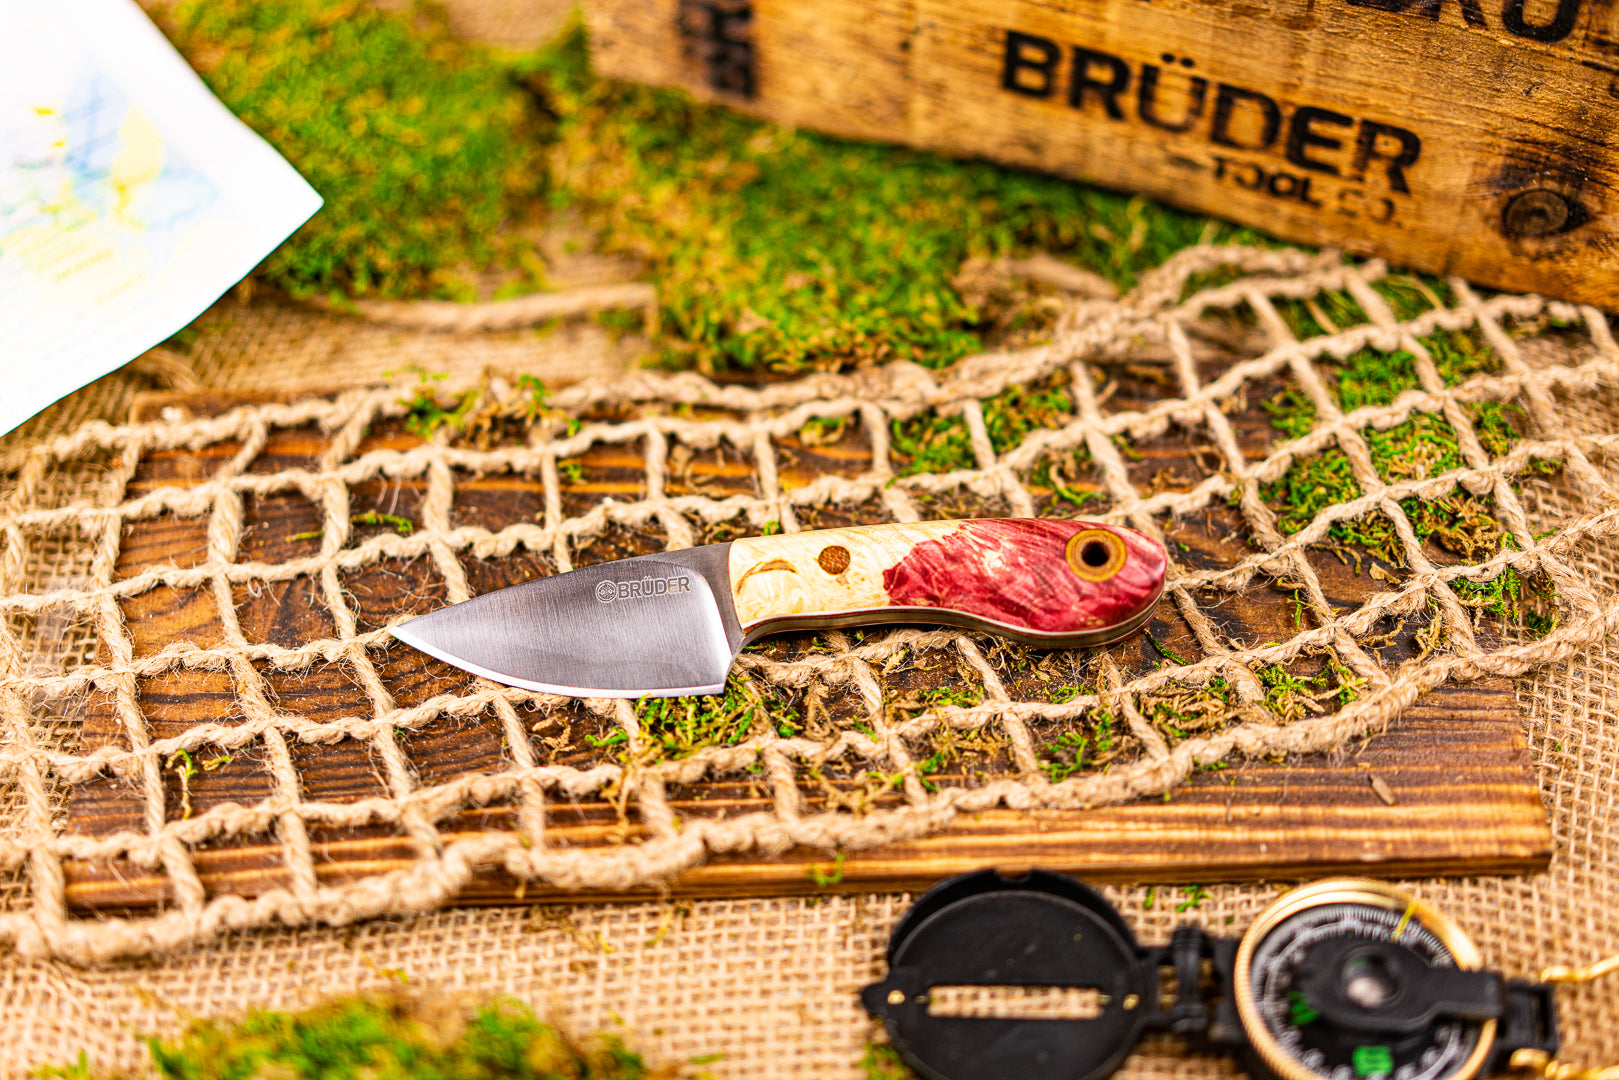 Brüder Skinner/EDC knife - Strawberry/Cream Dyed Burl